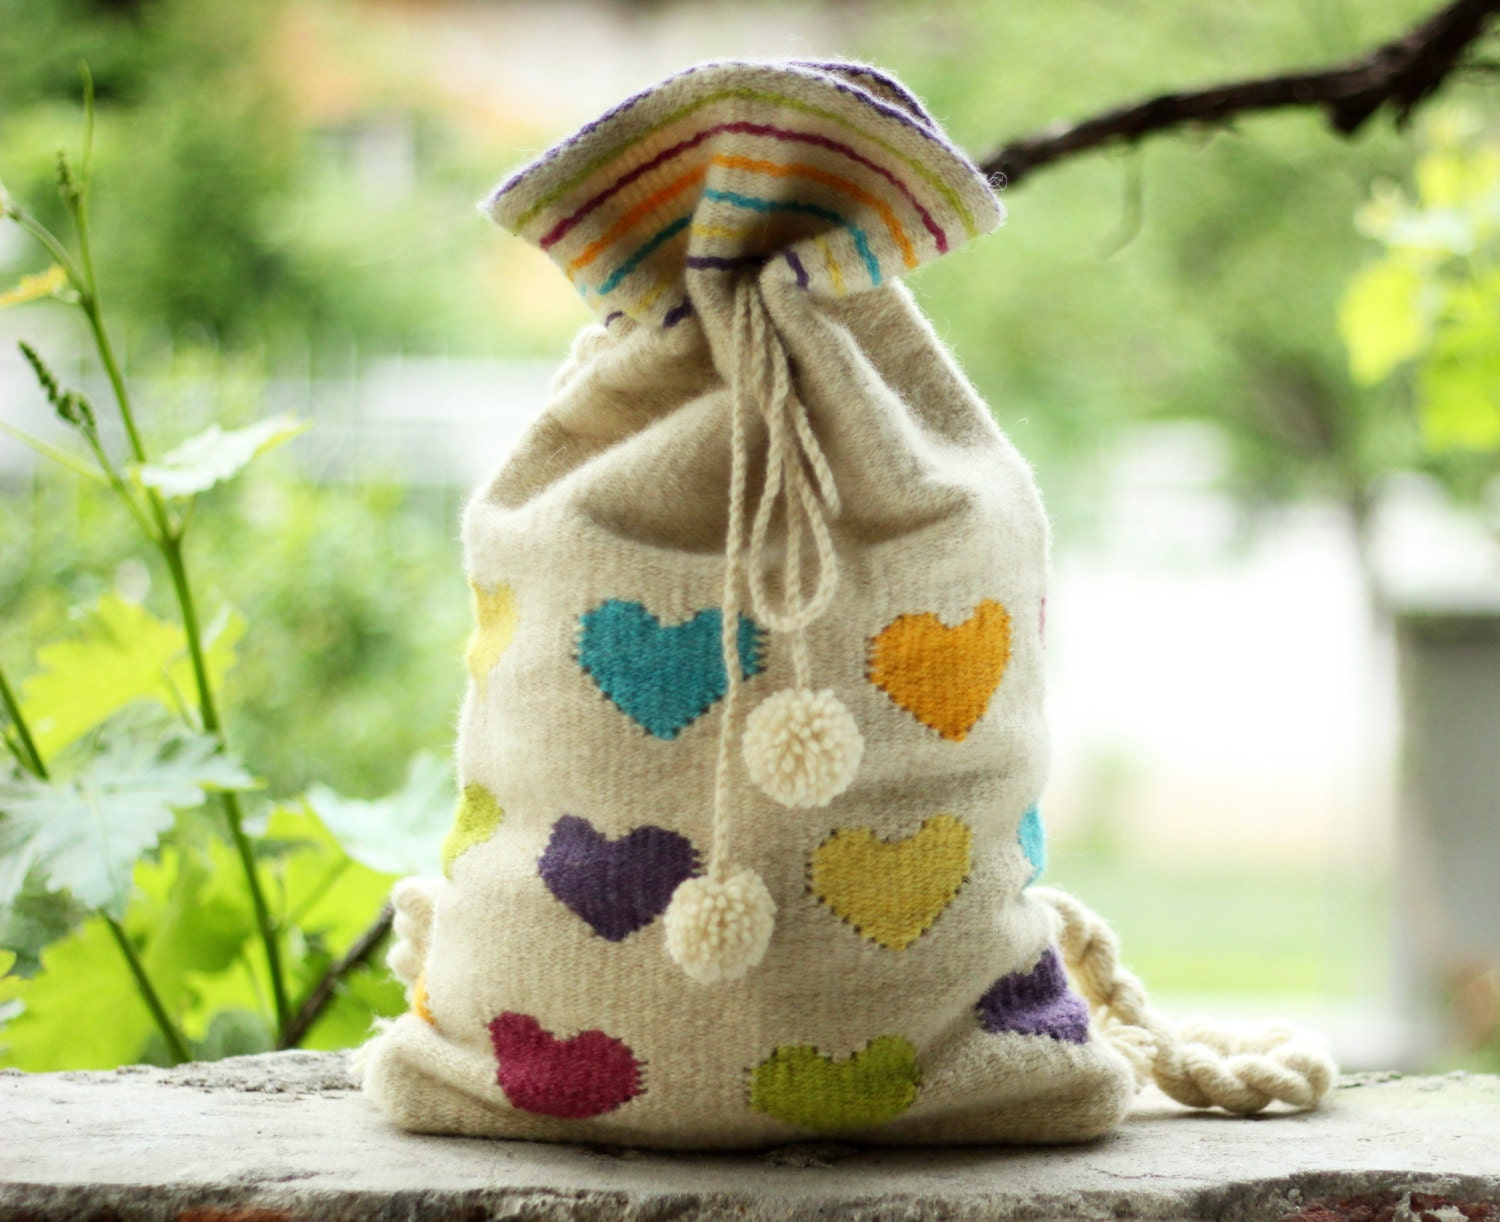 White Hand-woven Backpack With Color Hearts - Wool Backpack - Handmade Backpack - TheColorfulLoom